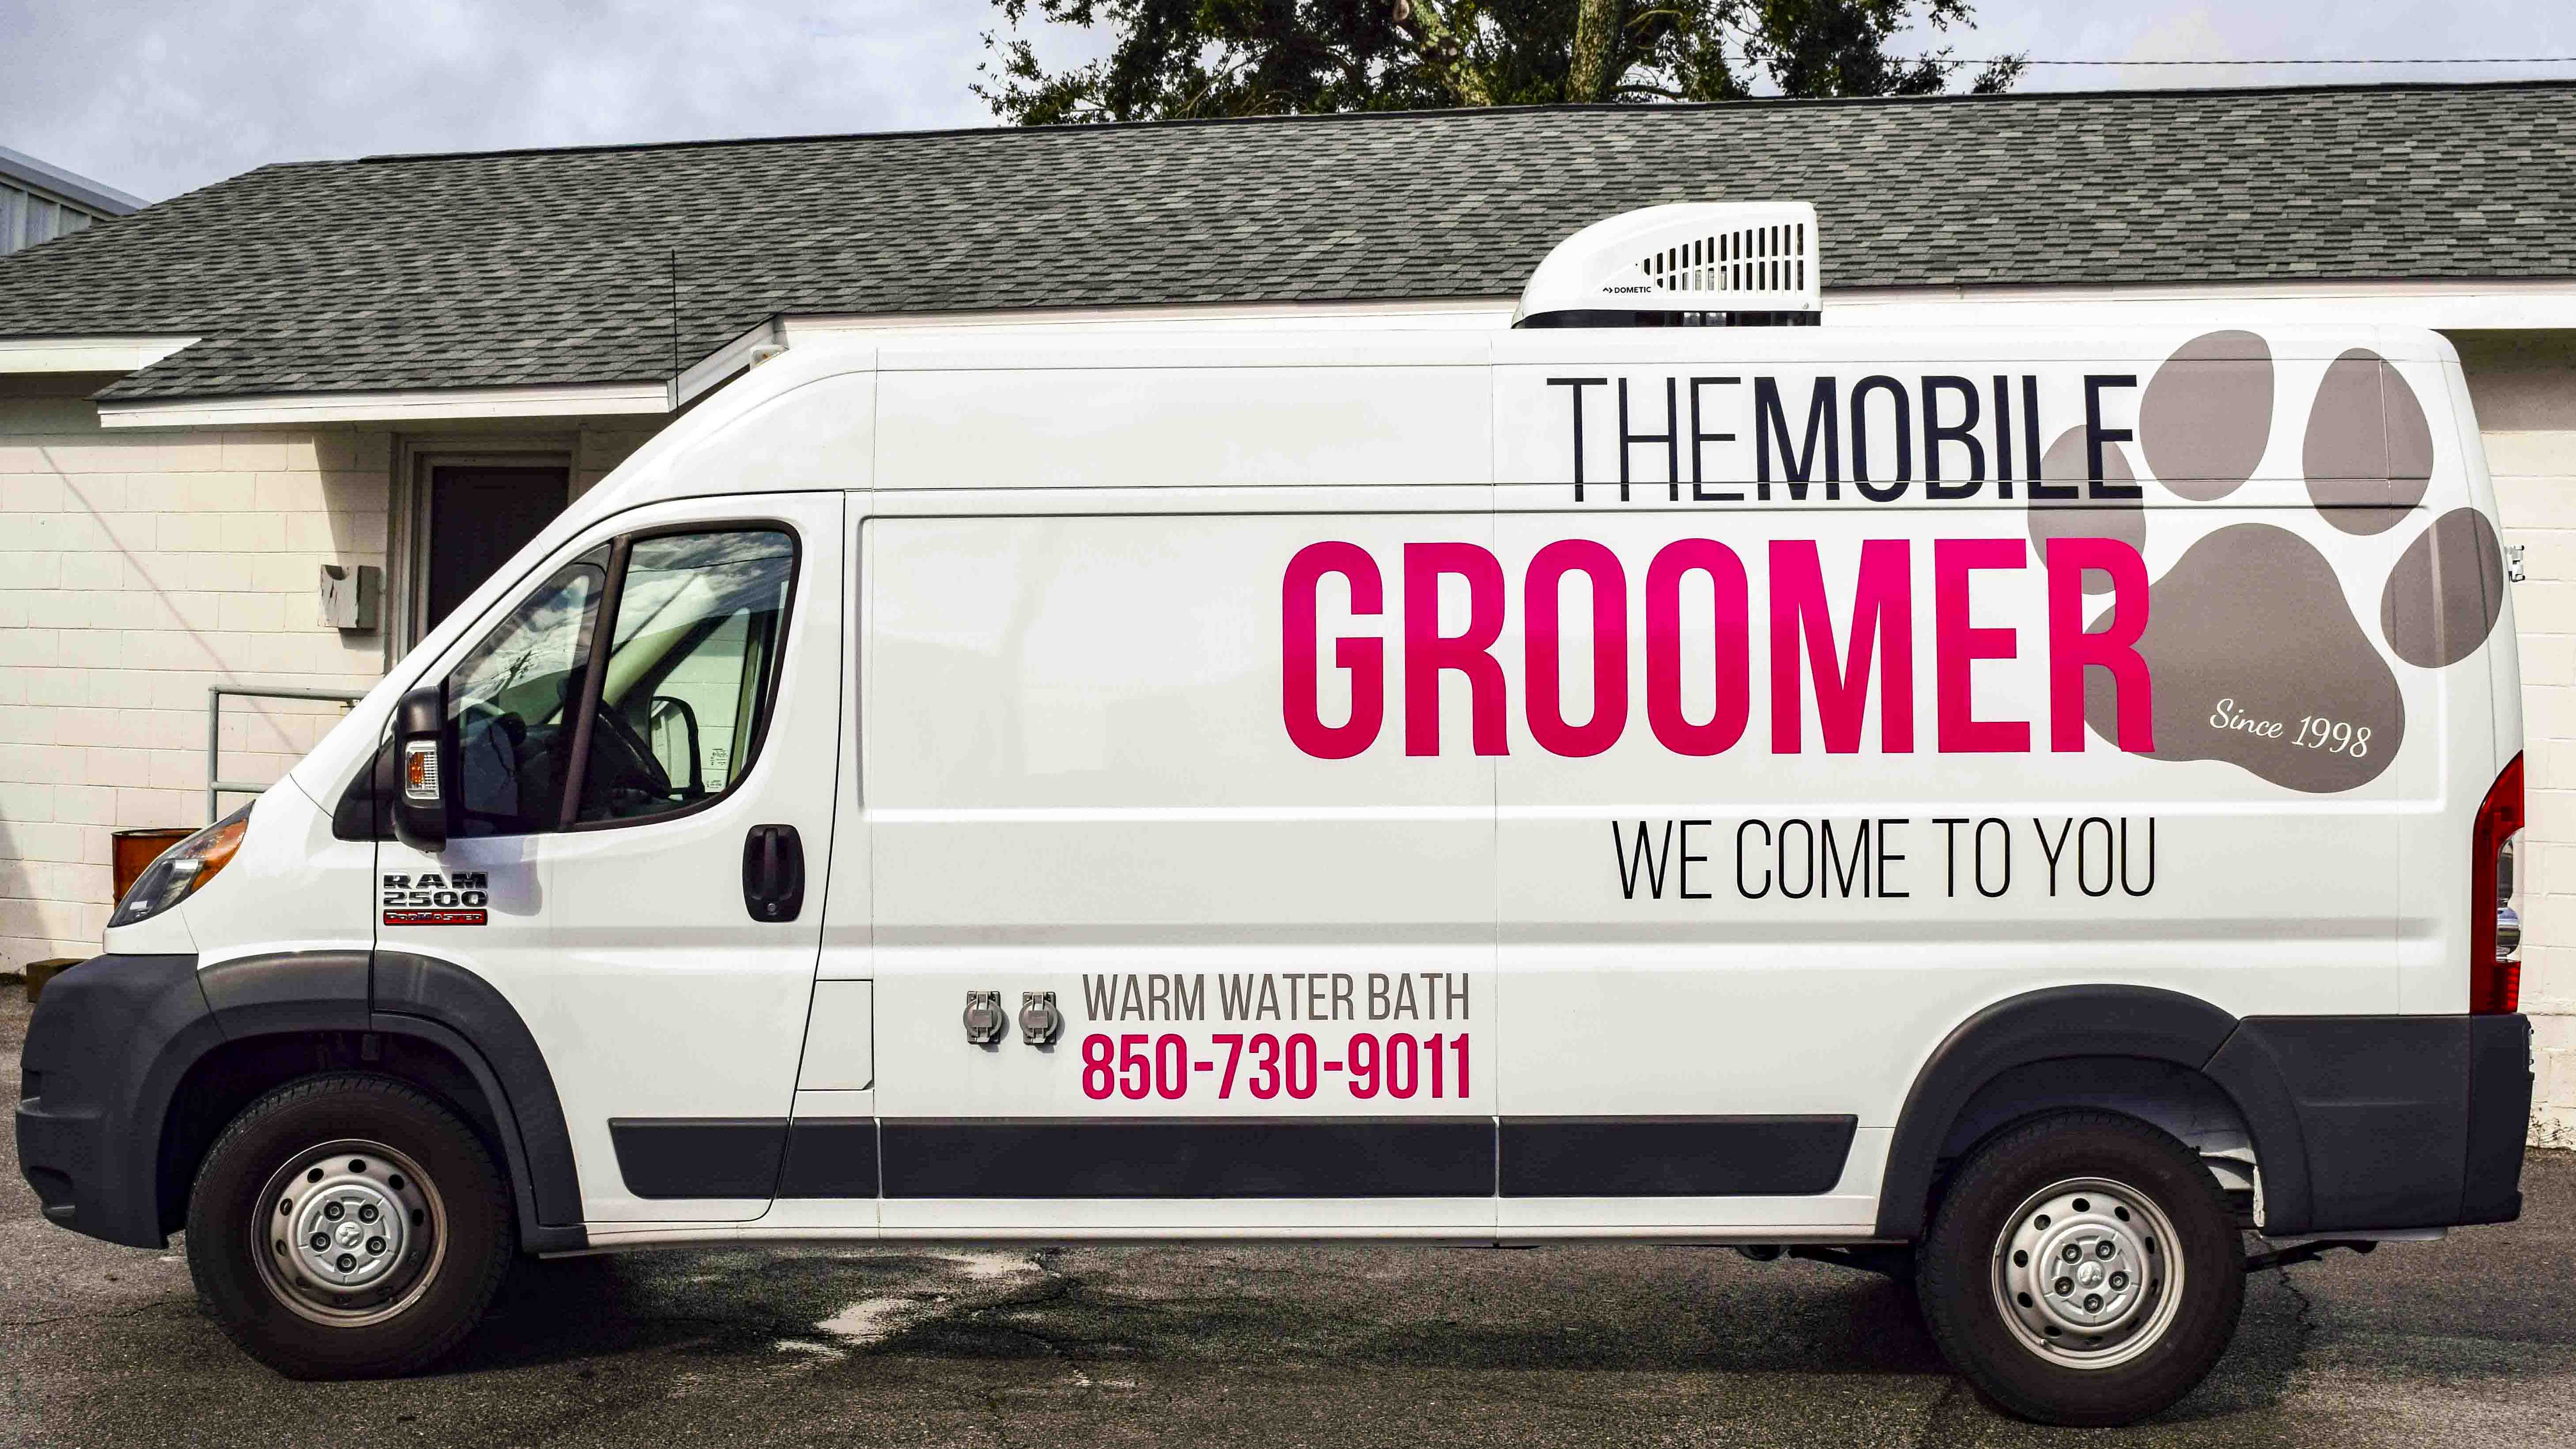 Pensacola Sign - Vehicle Graphics - Graphics for The Mobile Groomer